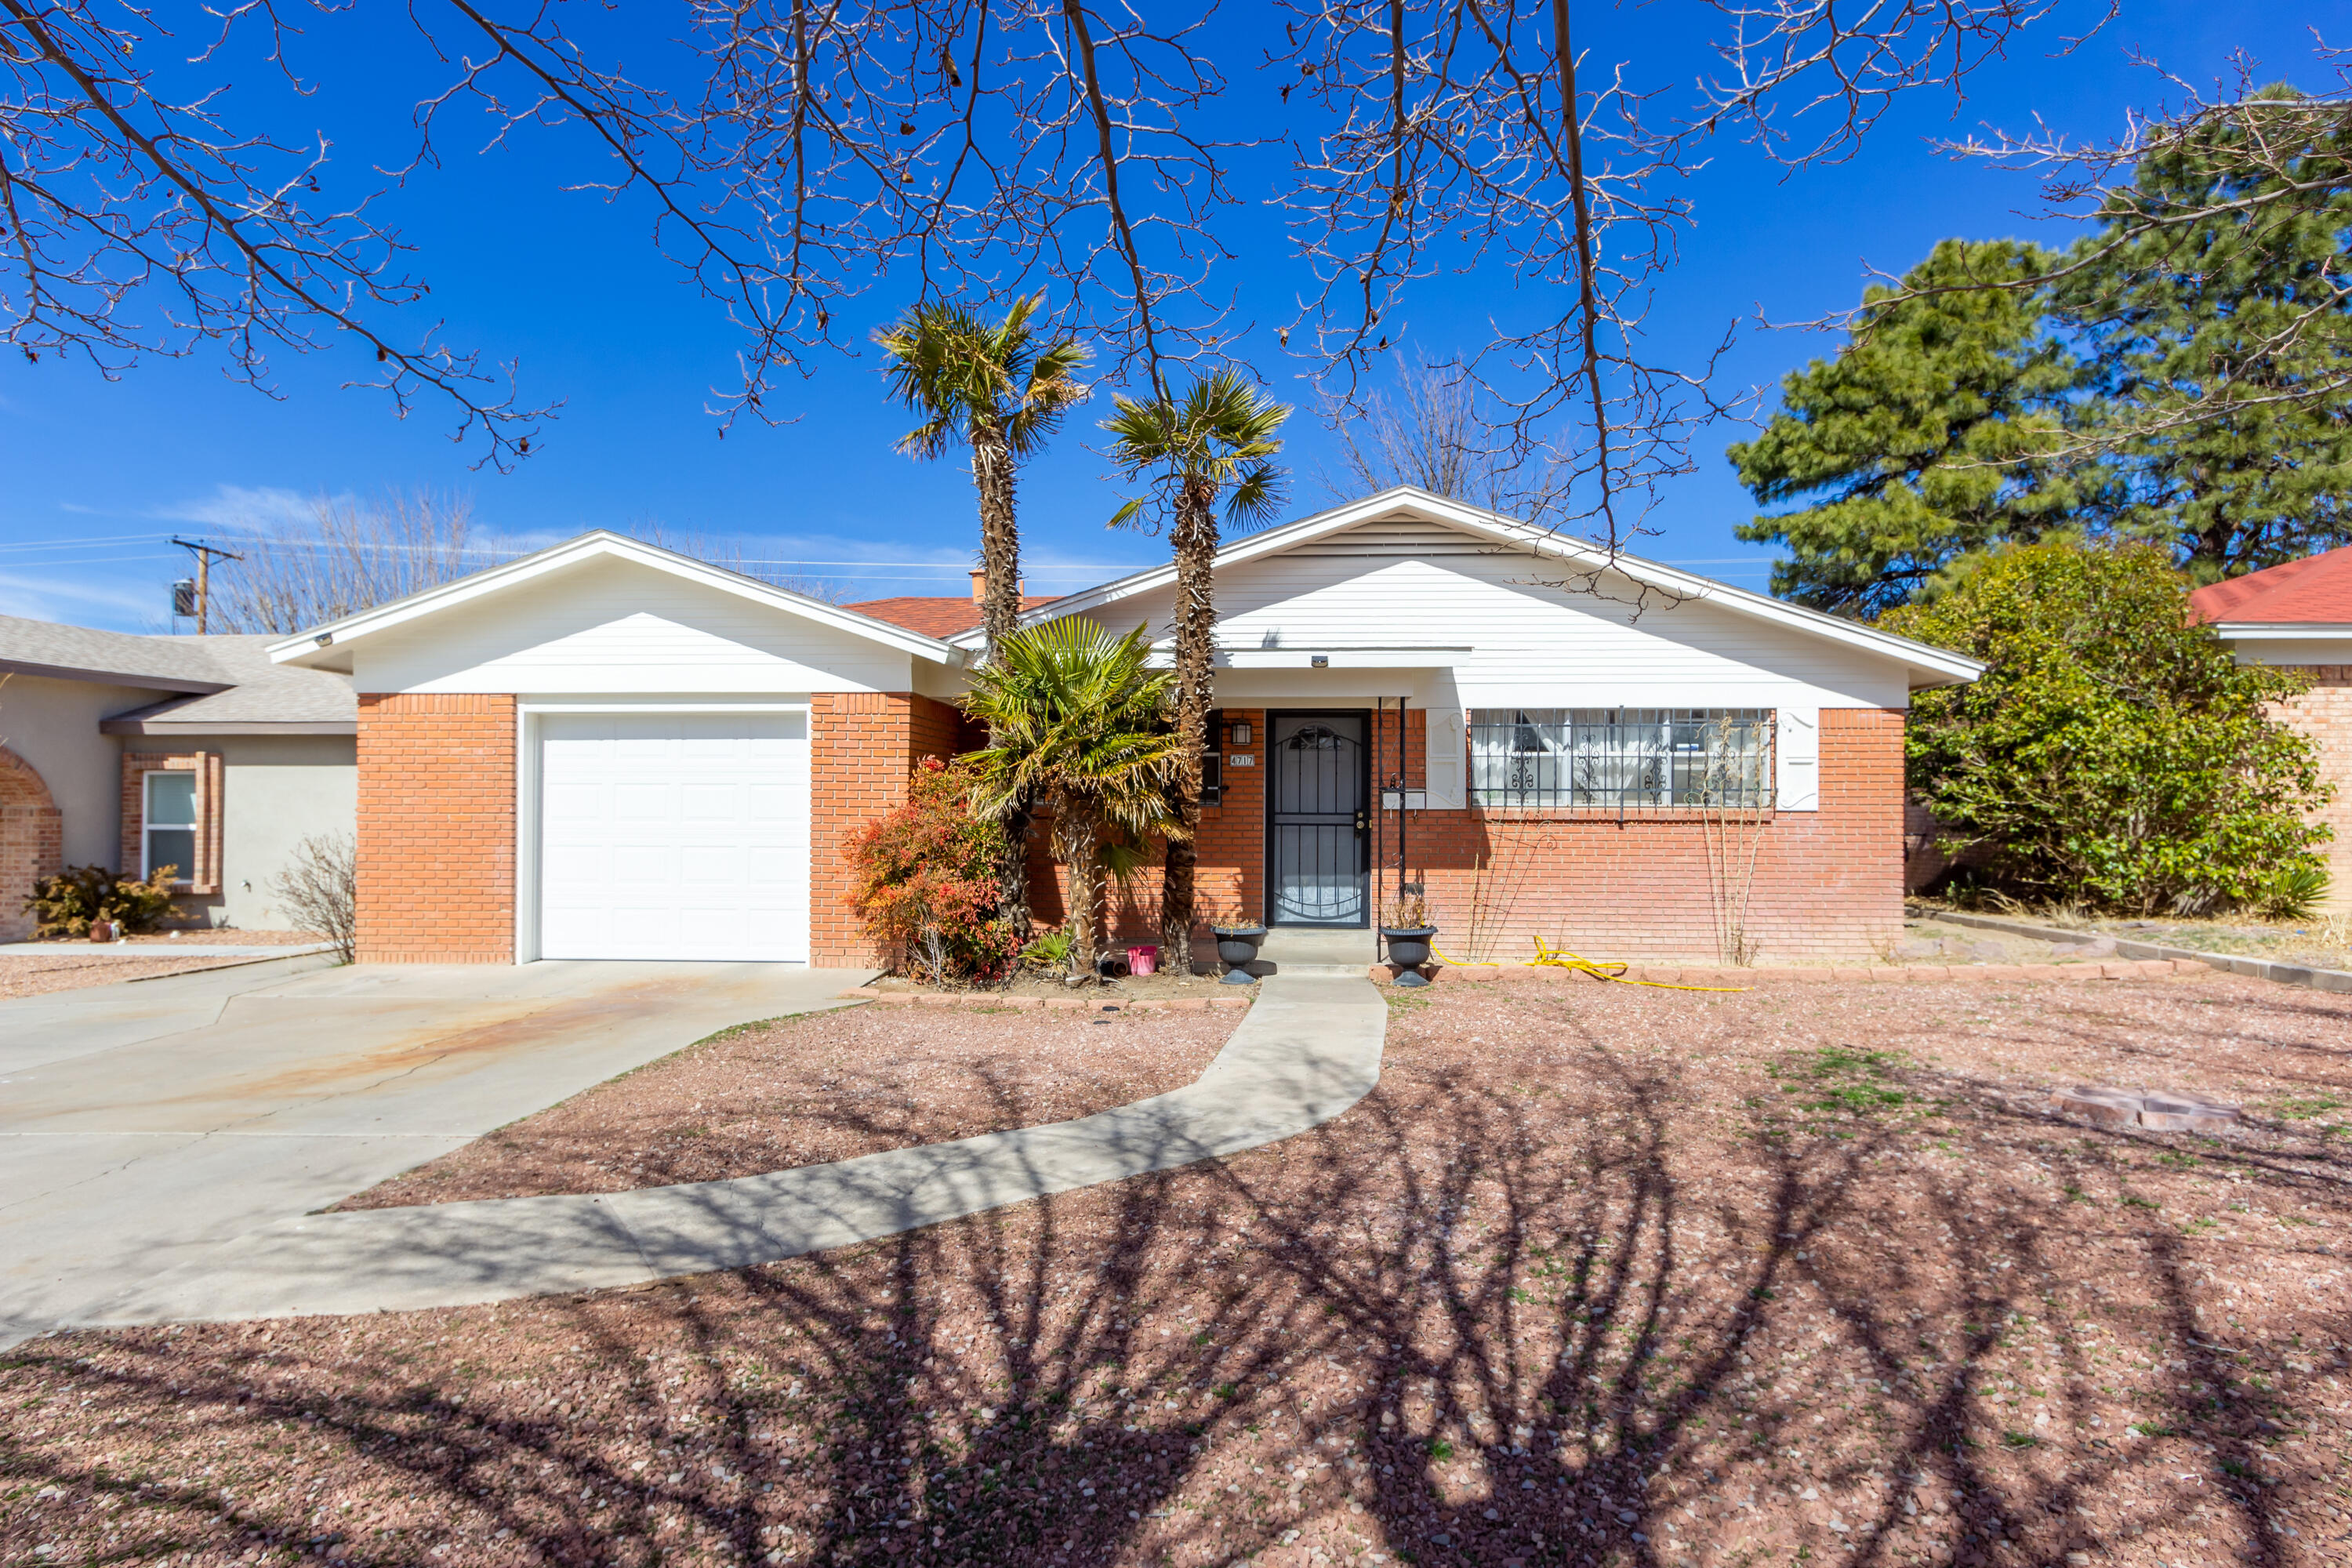 4717 COMANCHE Road, Albuquerque NM 87110